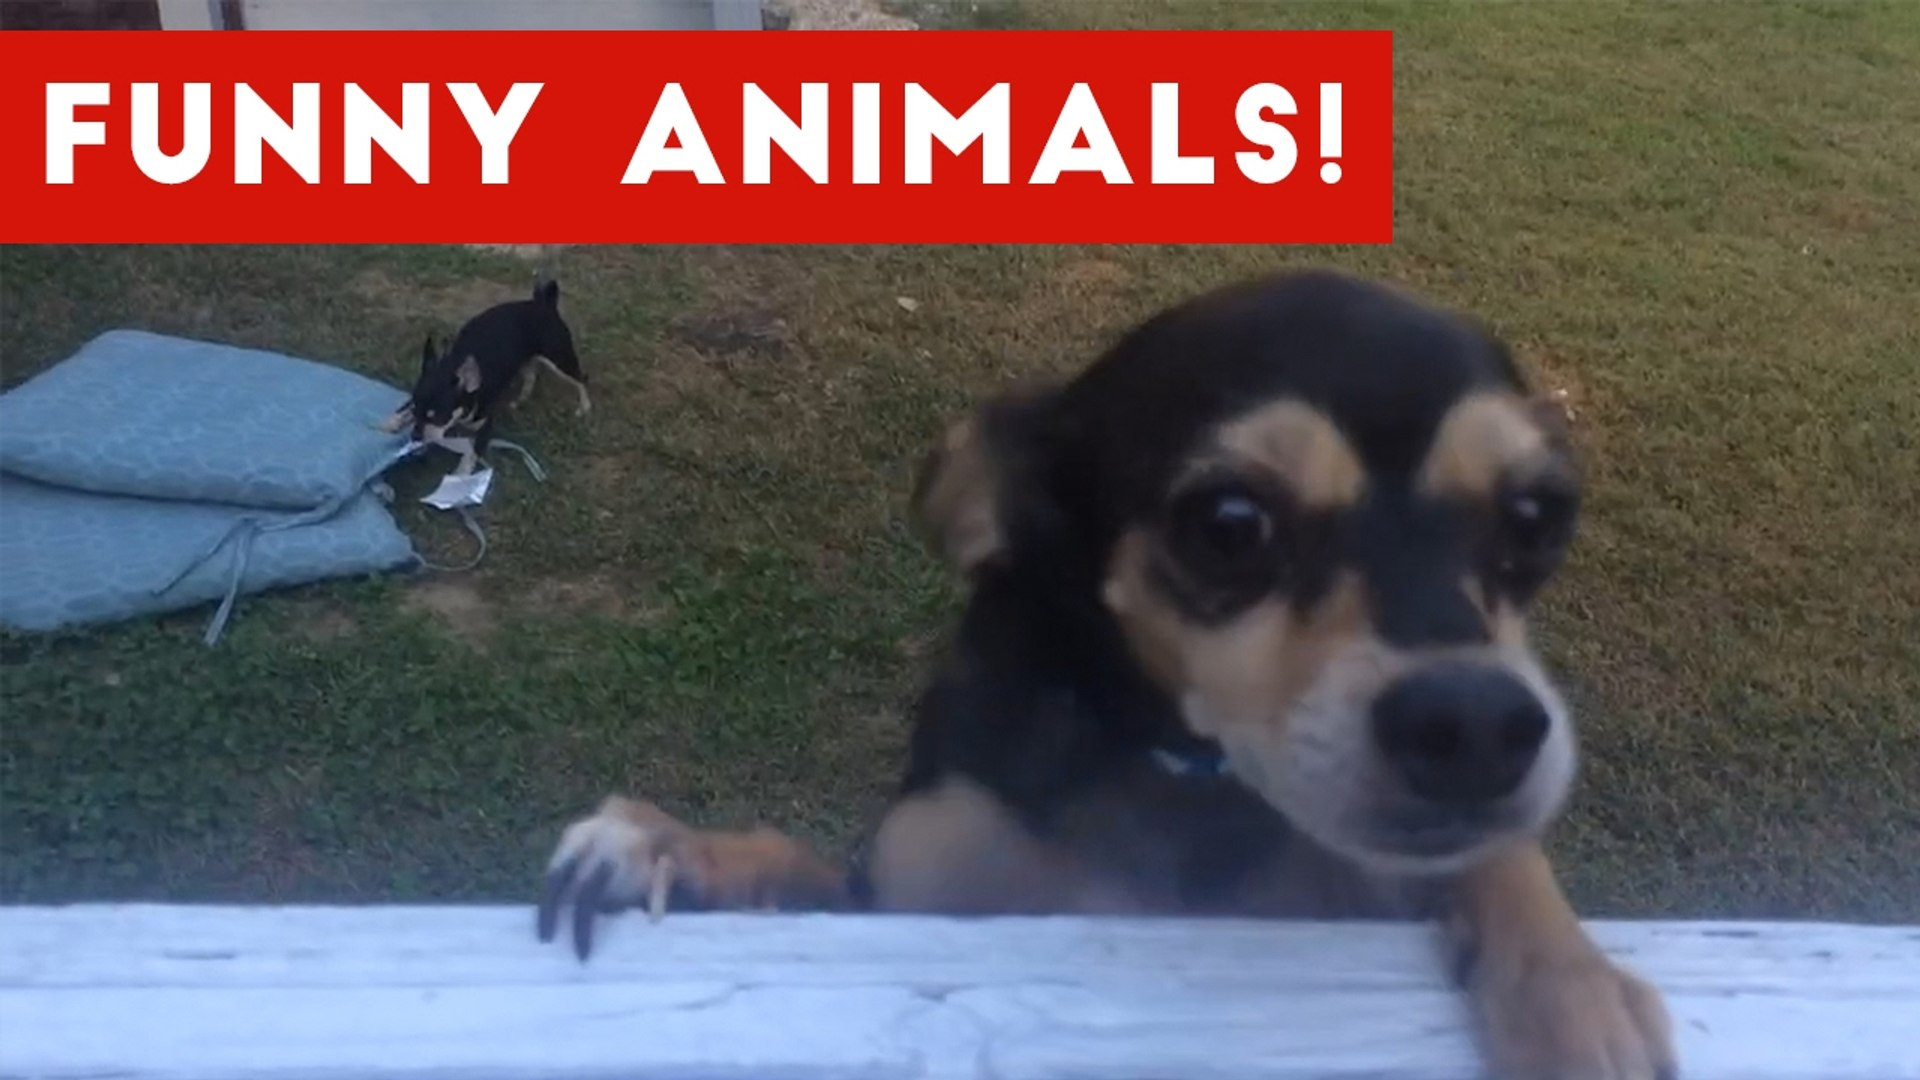 Funniest Pet Clips, Bloopers - Moments Caught On Tape 2017 - Funny Pet Videos